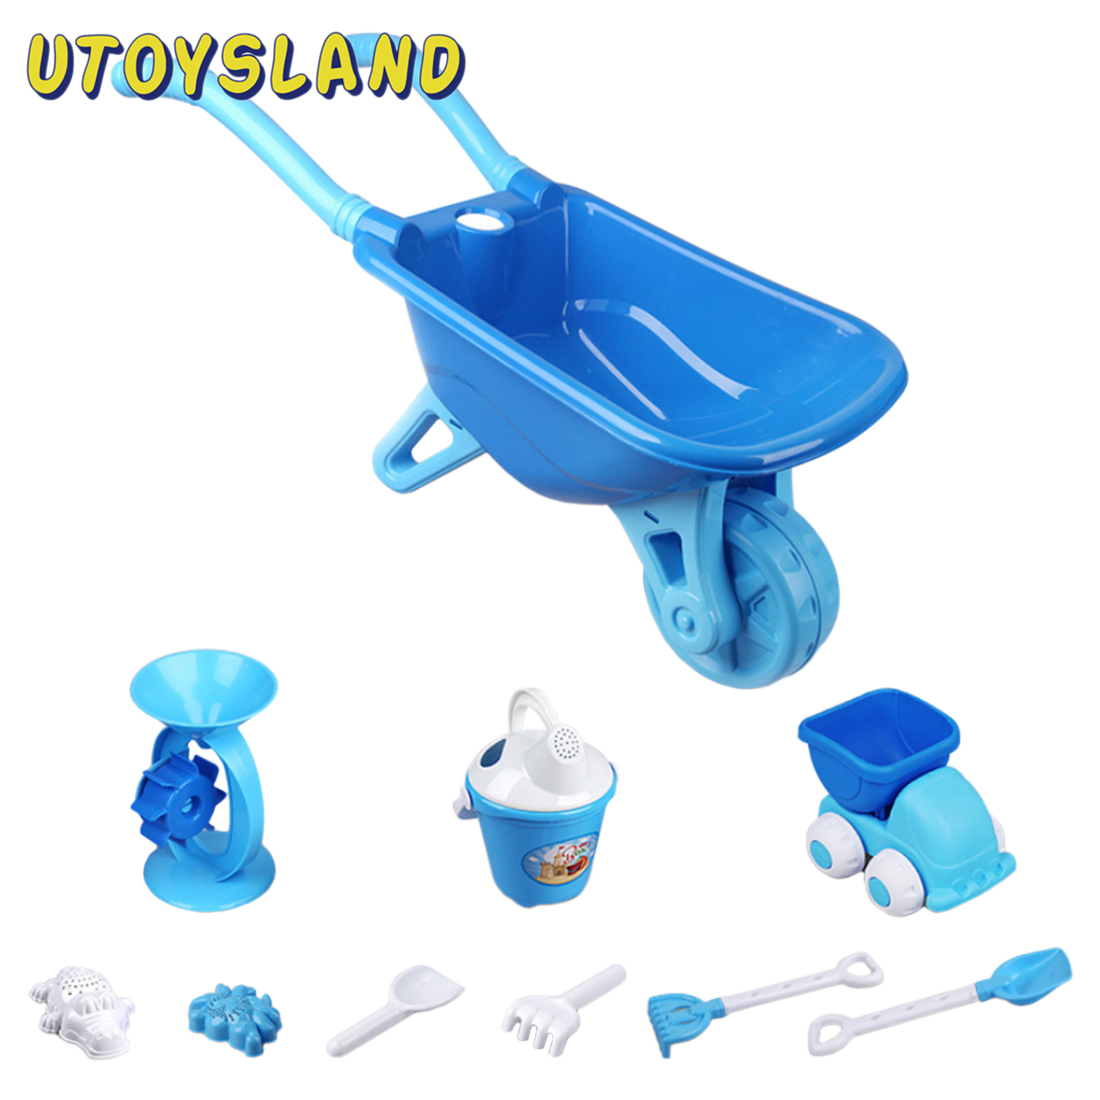 Children Outdoor Wheelbarrow Beach Sand Toy Set With Bucket For Children Kids Beach Sand Toys Water Fun Sports Bathroom 2 Colors